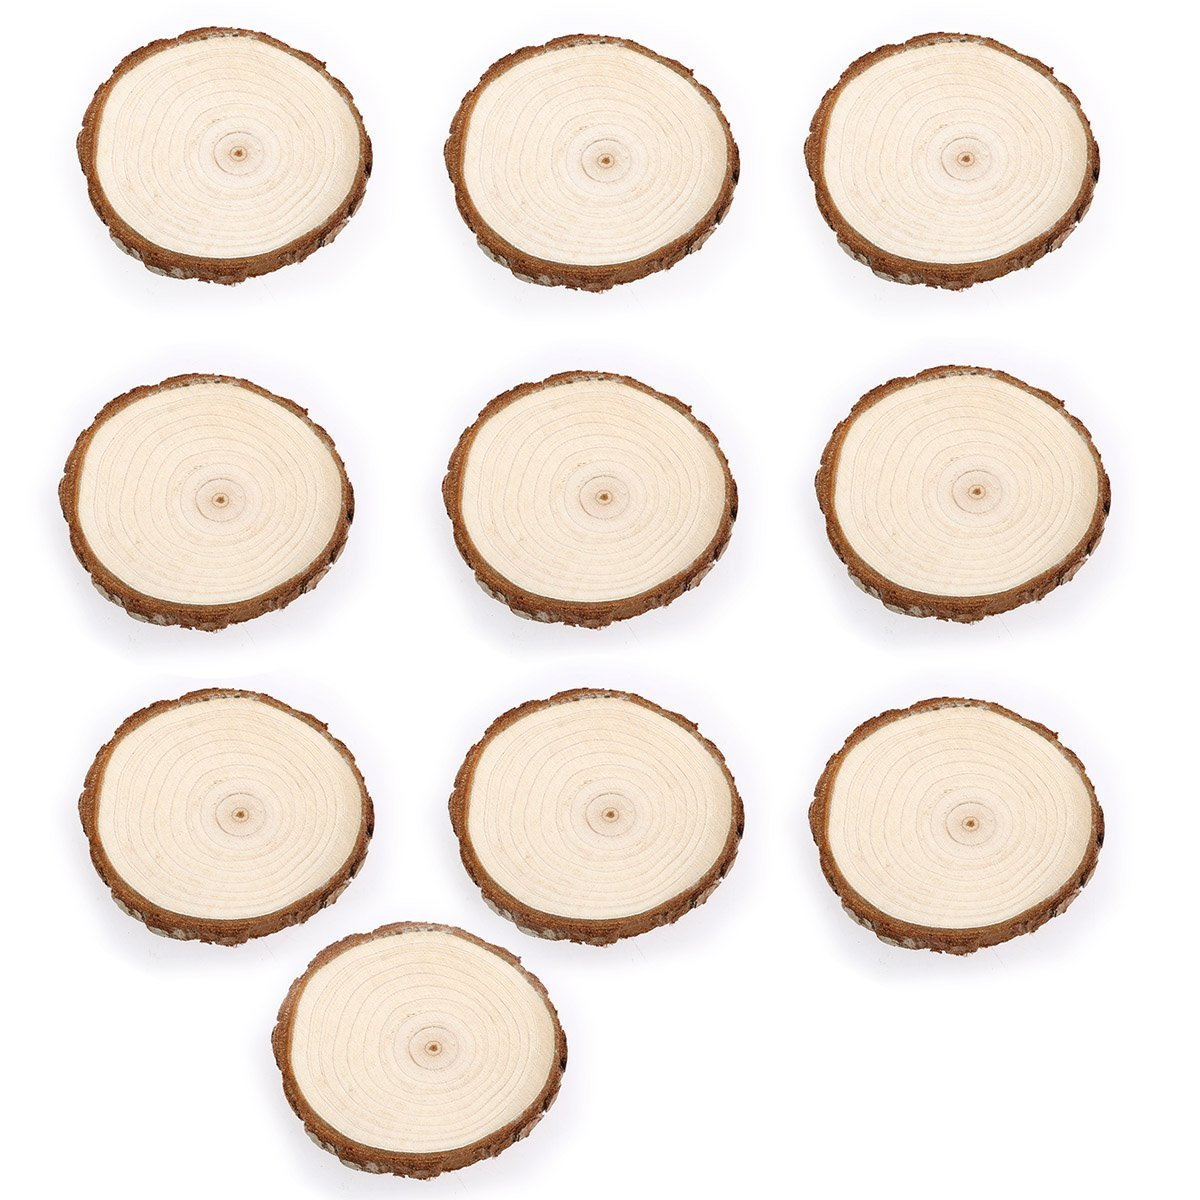 COCO Unpainted Natural Round Blank Wood Slices with Tree Bark Log Discs for DIY Craft Woodburning Christmas Rustic Wedding Ornaments 7-9cm/3''-3.5'' (Pack of 10 pcs)